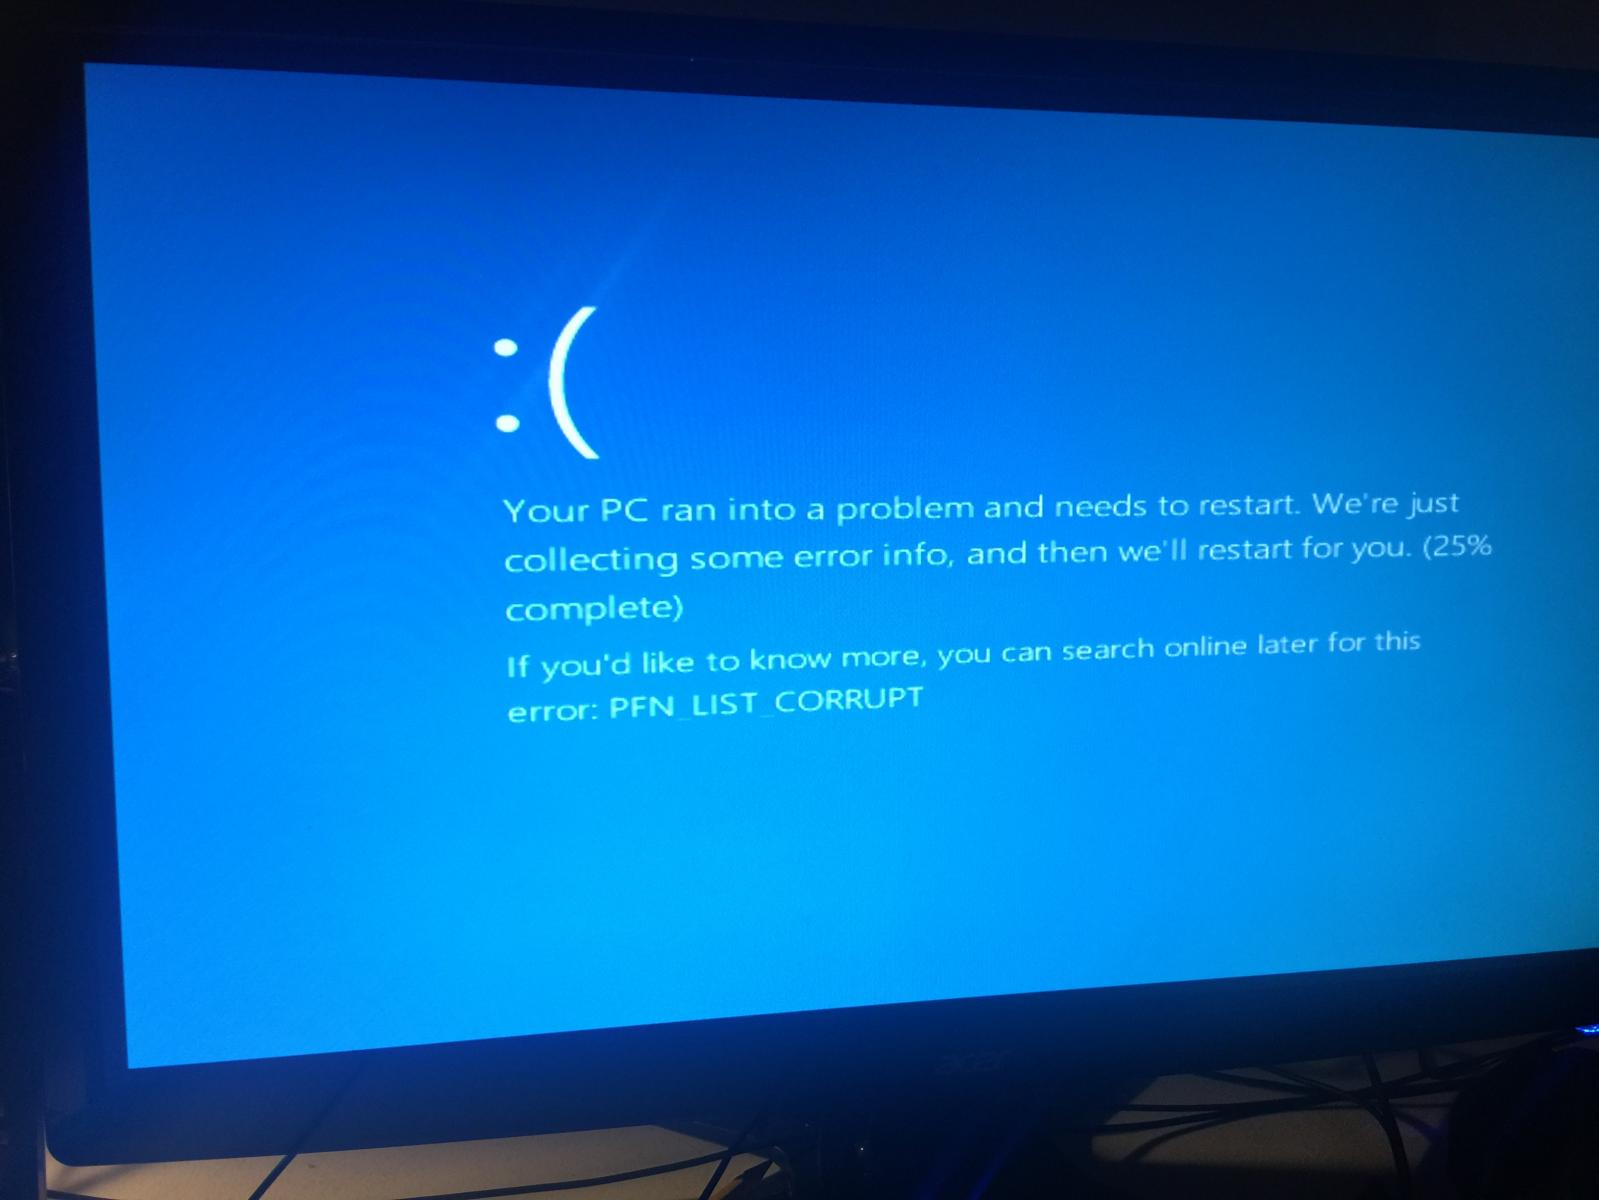 Windows 10 Crashes 3 days in a row - Troubleshooting - Linus Tech Tips